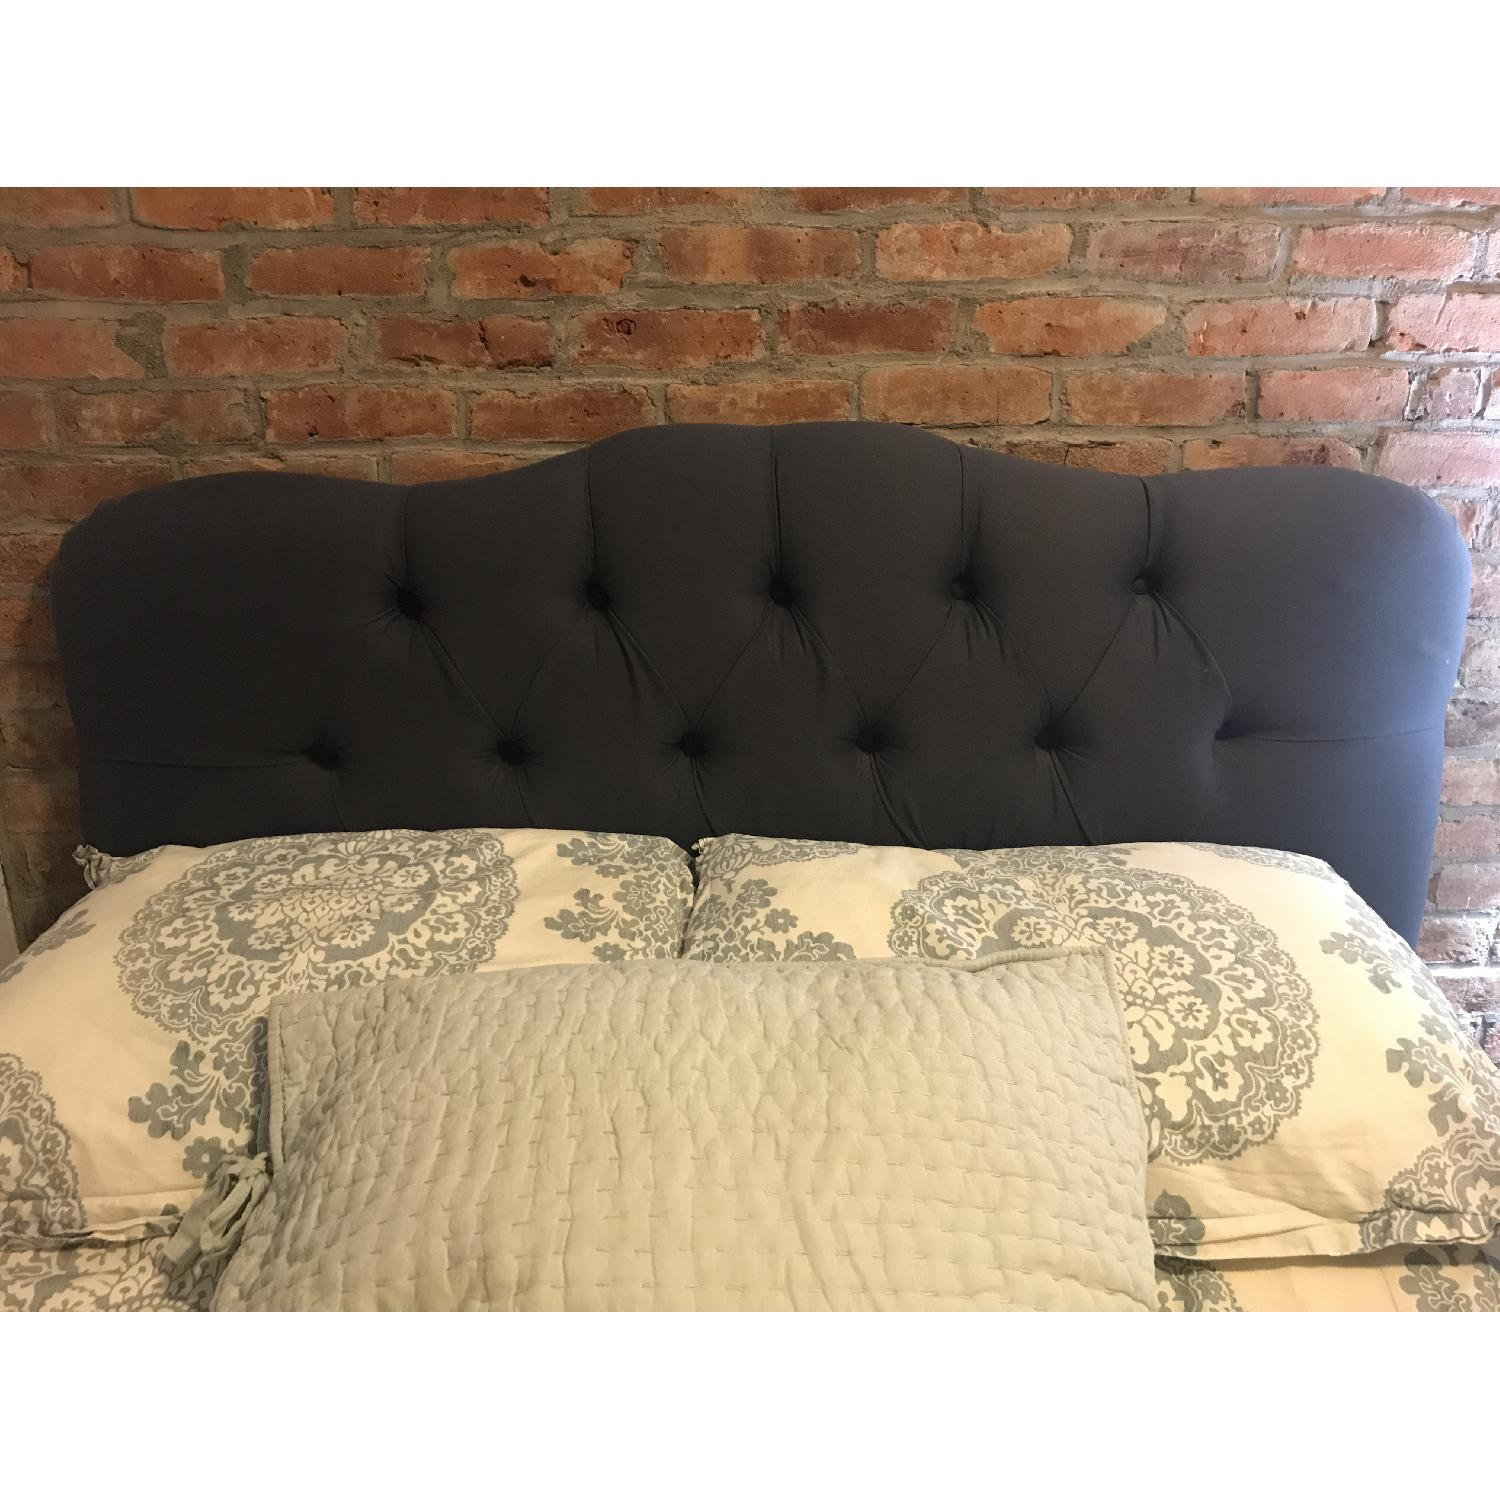 Skyline Carnaby Tufted Upholstered Headboard in Twill Navy